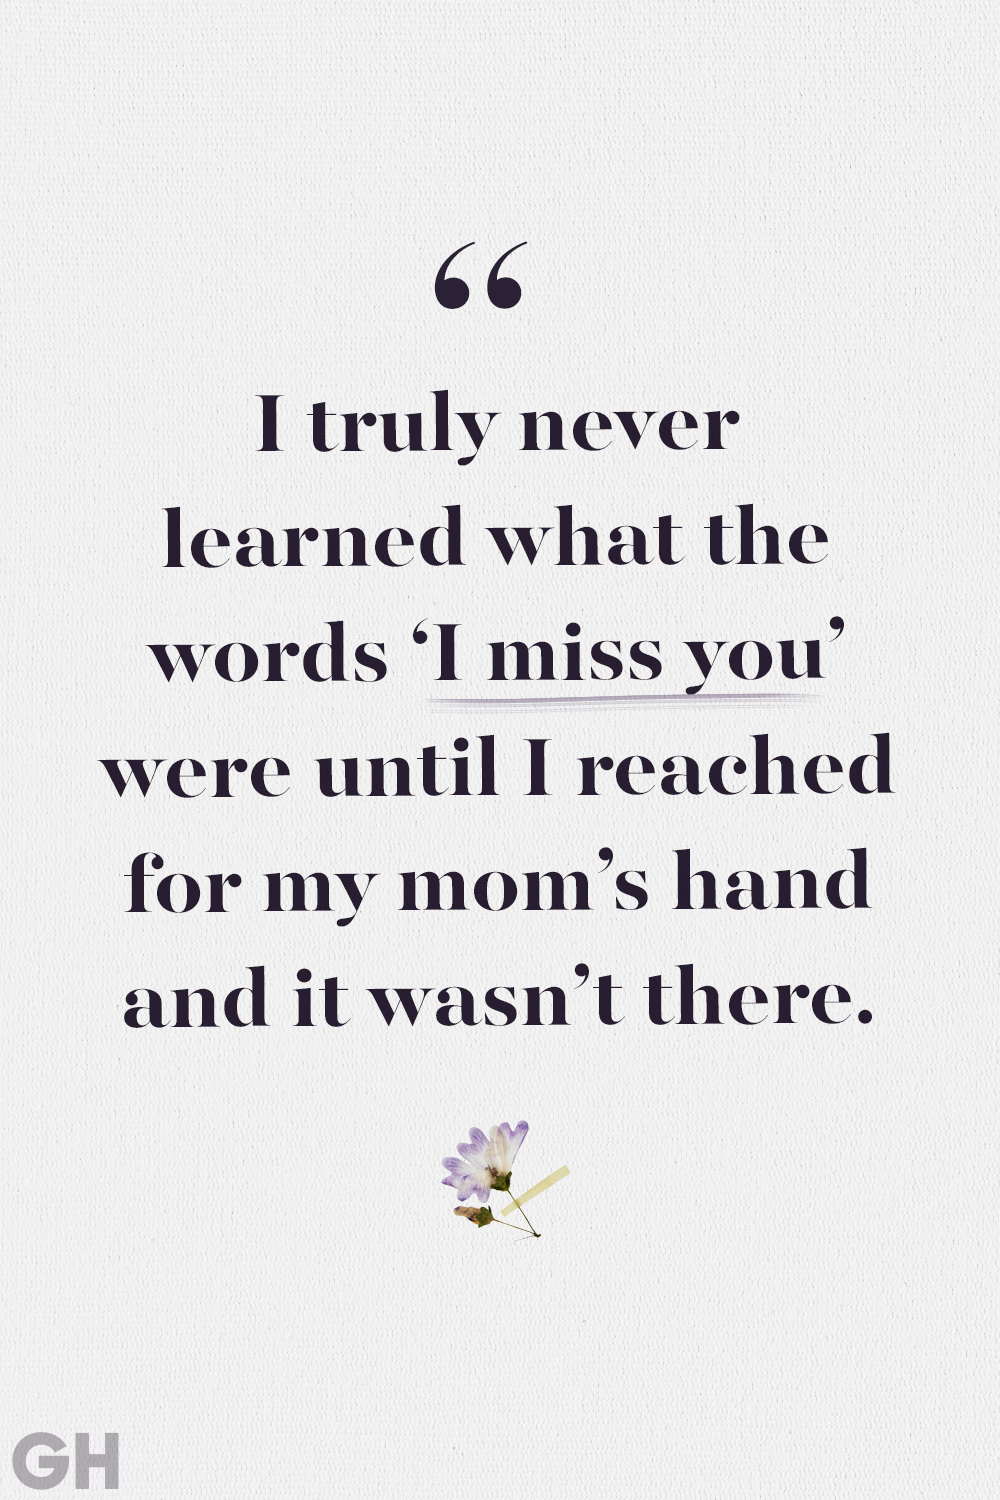 17 Comforting Loss of Mother Quotes - Quotes to Remember